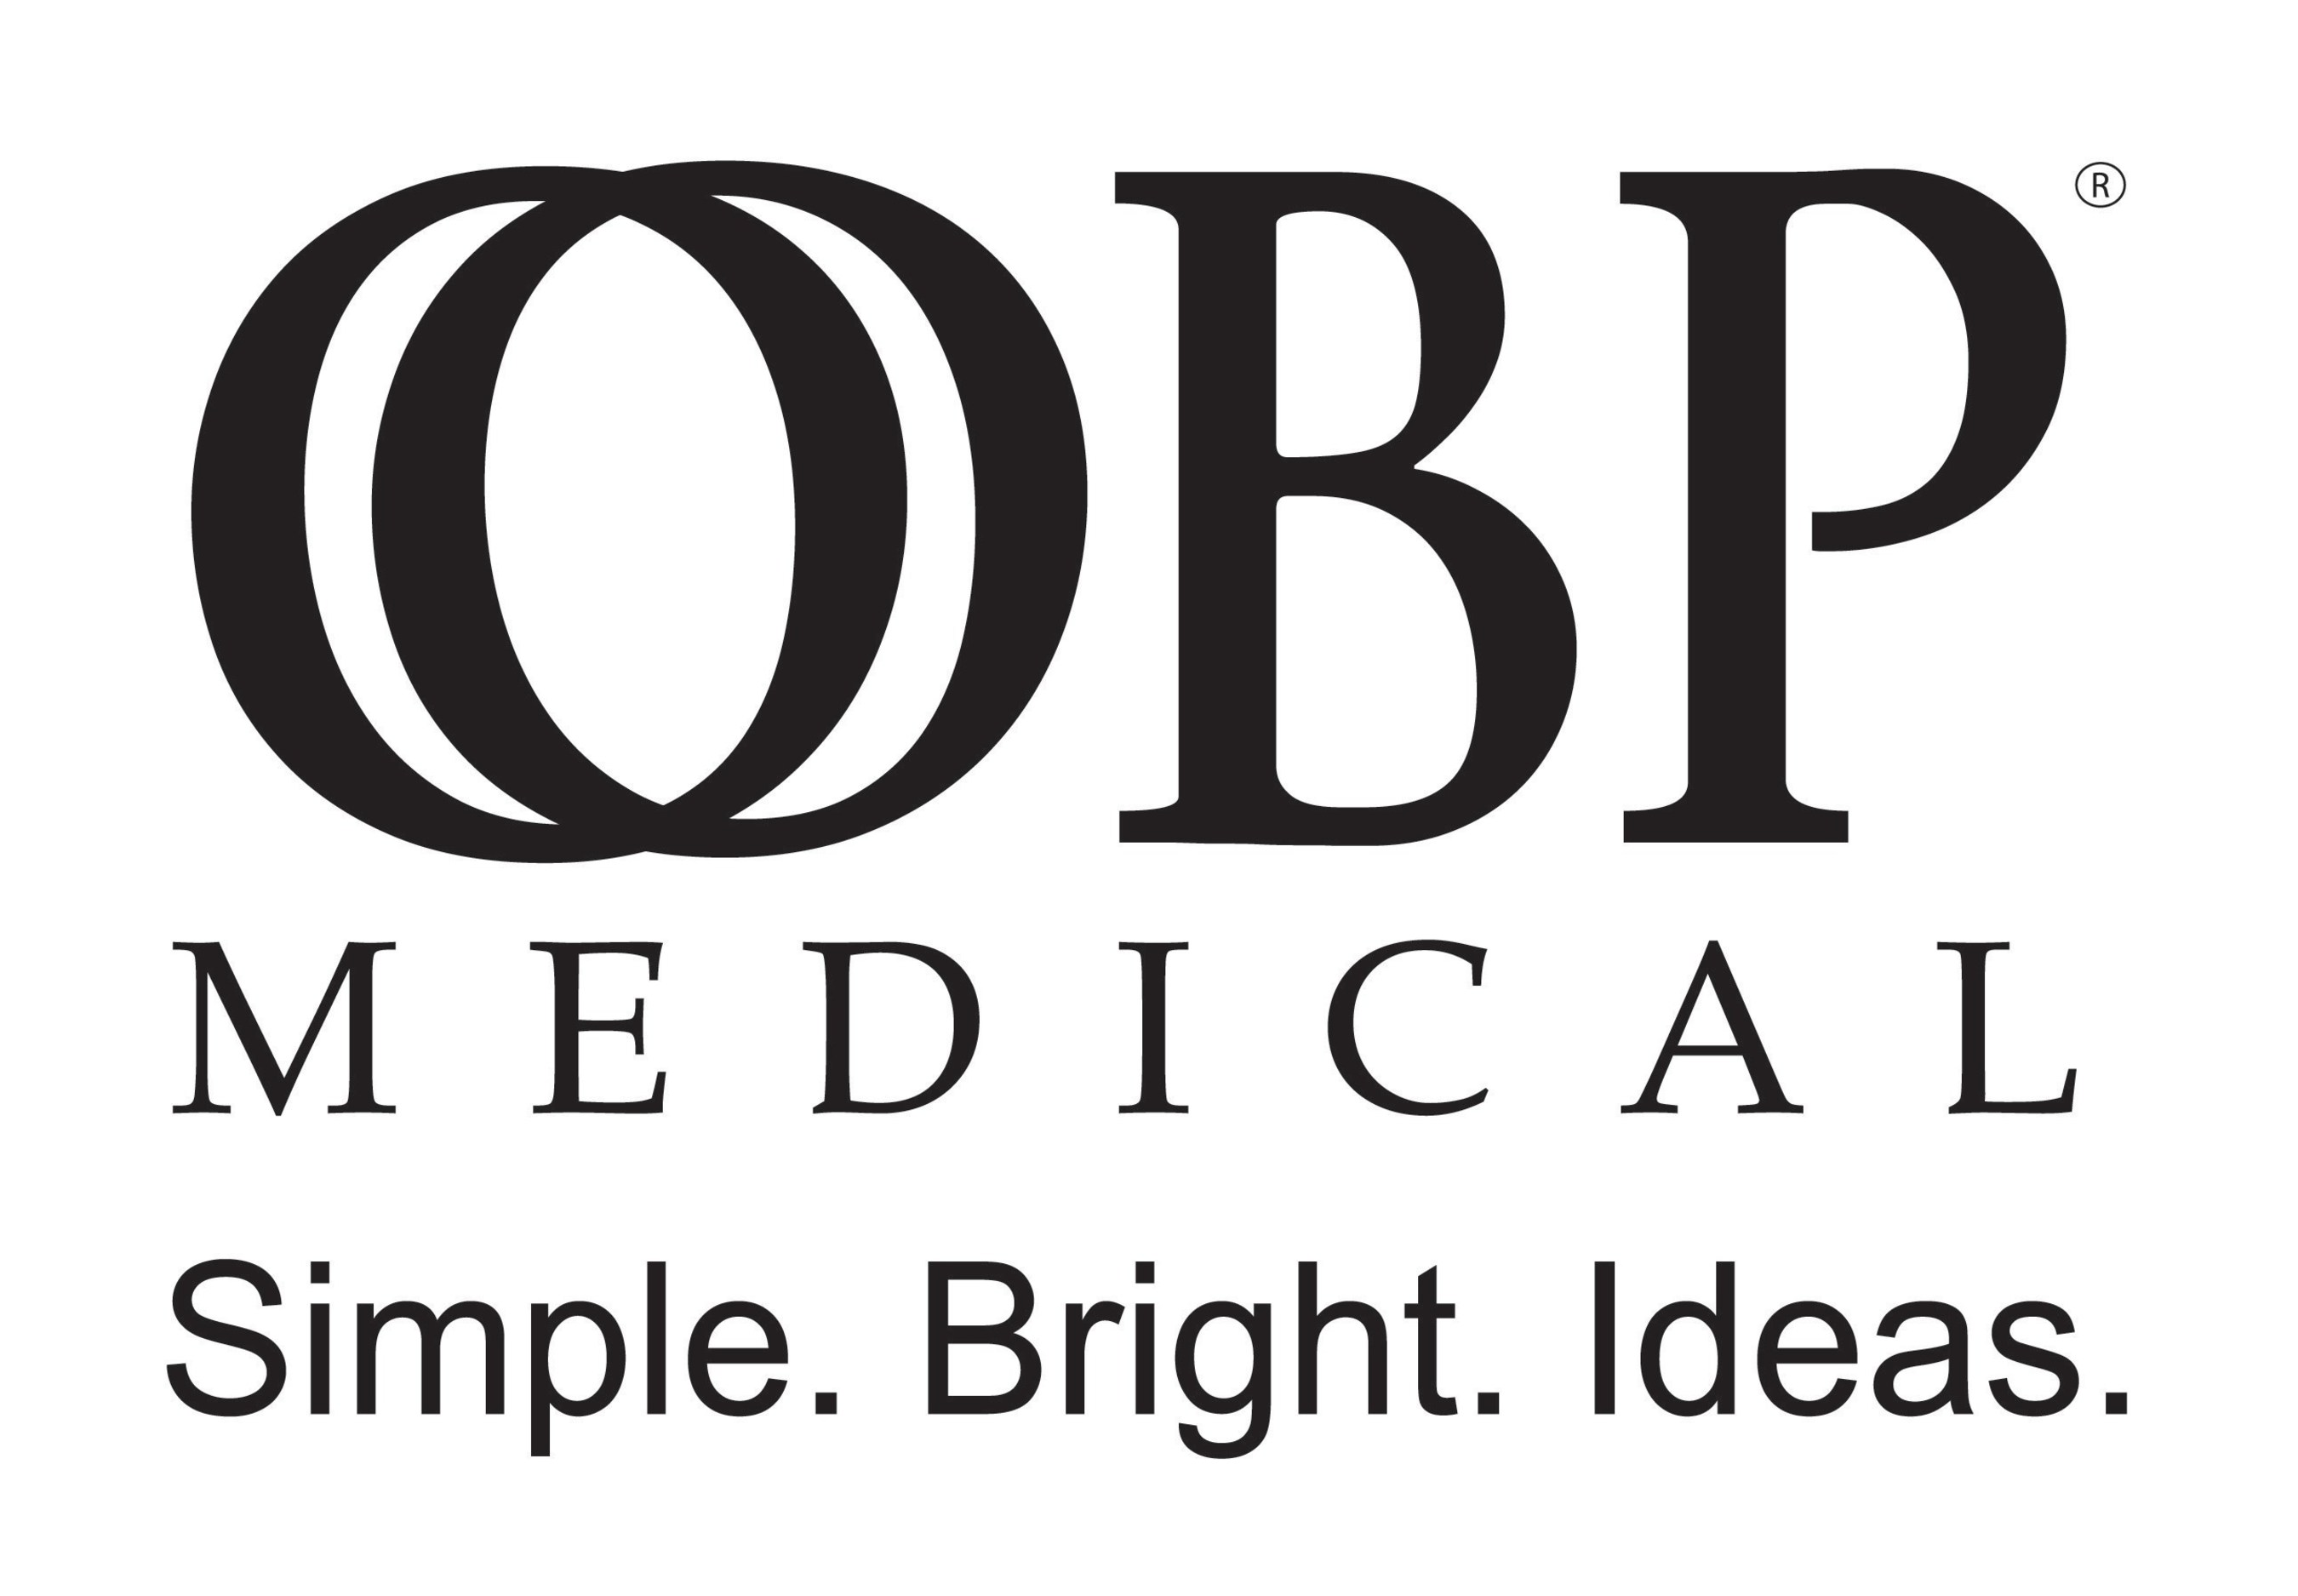 OBP Medical, leading global developer of single-use, self-contained, illuminating medical devices.